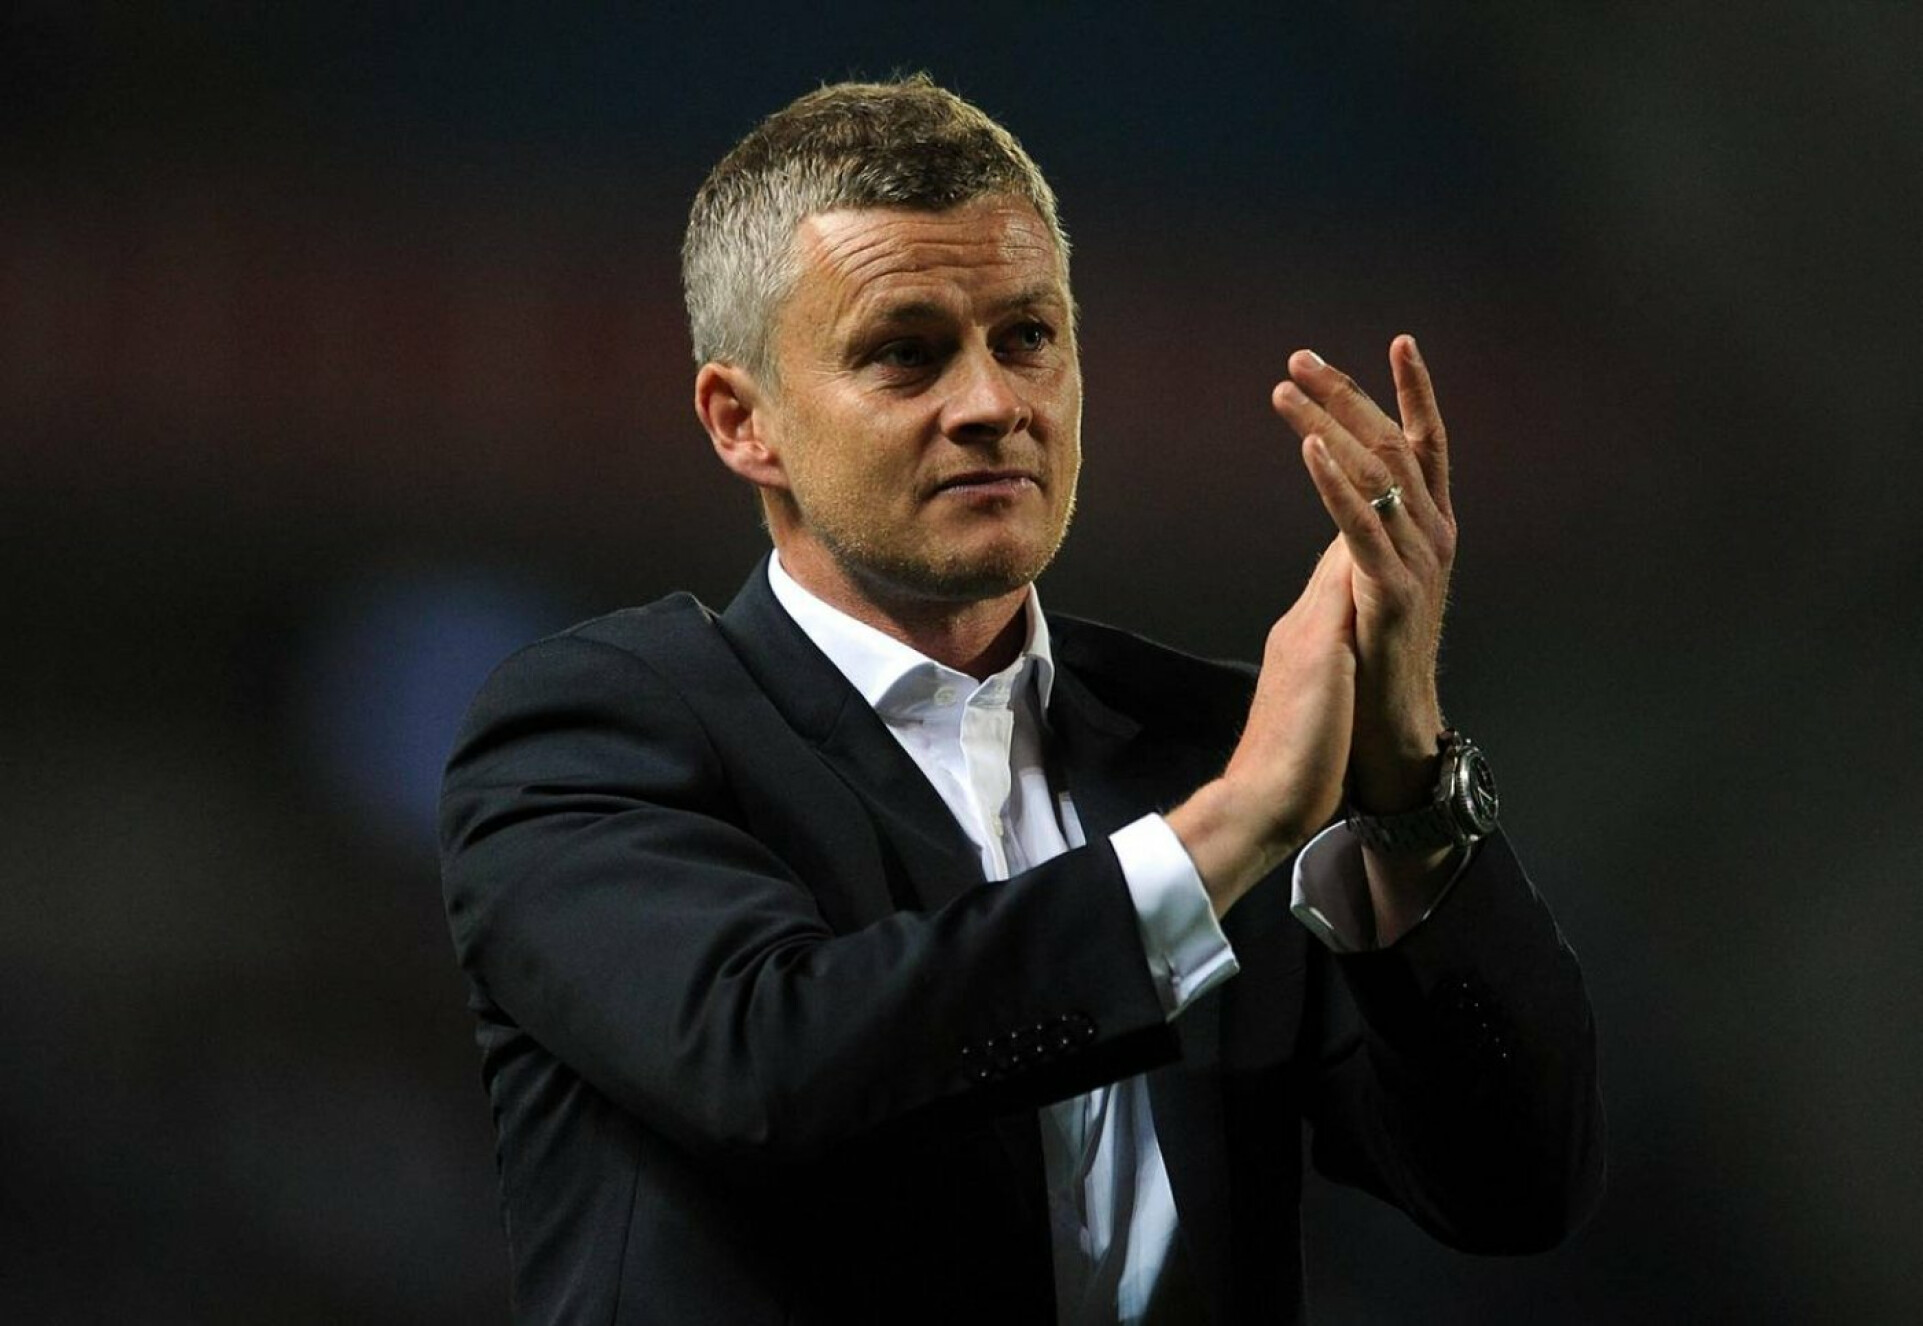 OFFICIAL: Ole Gunnar Solskjaer appointed caretaker manager by Manchester United